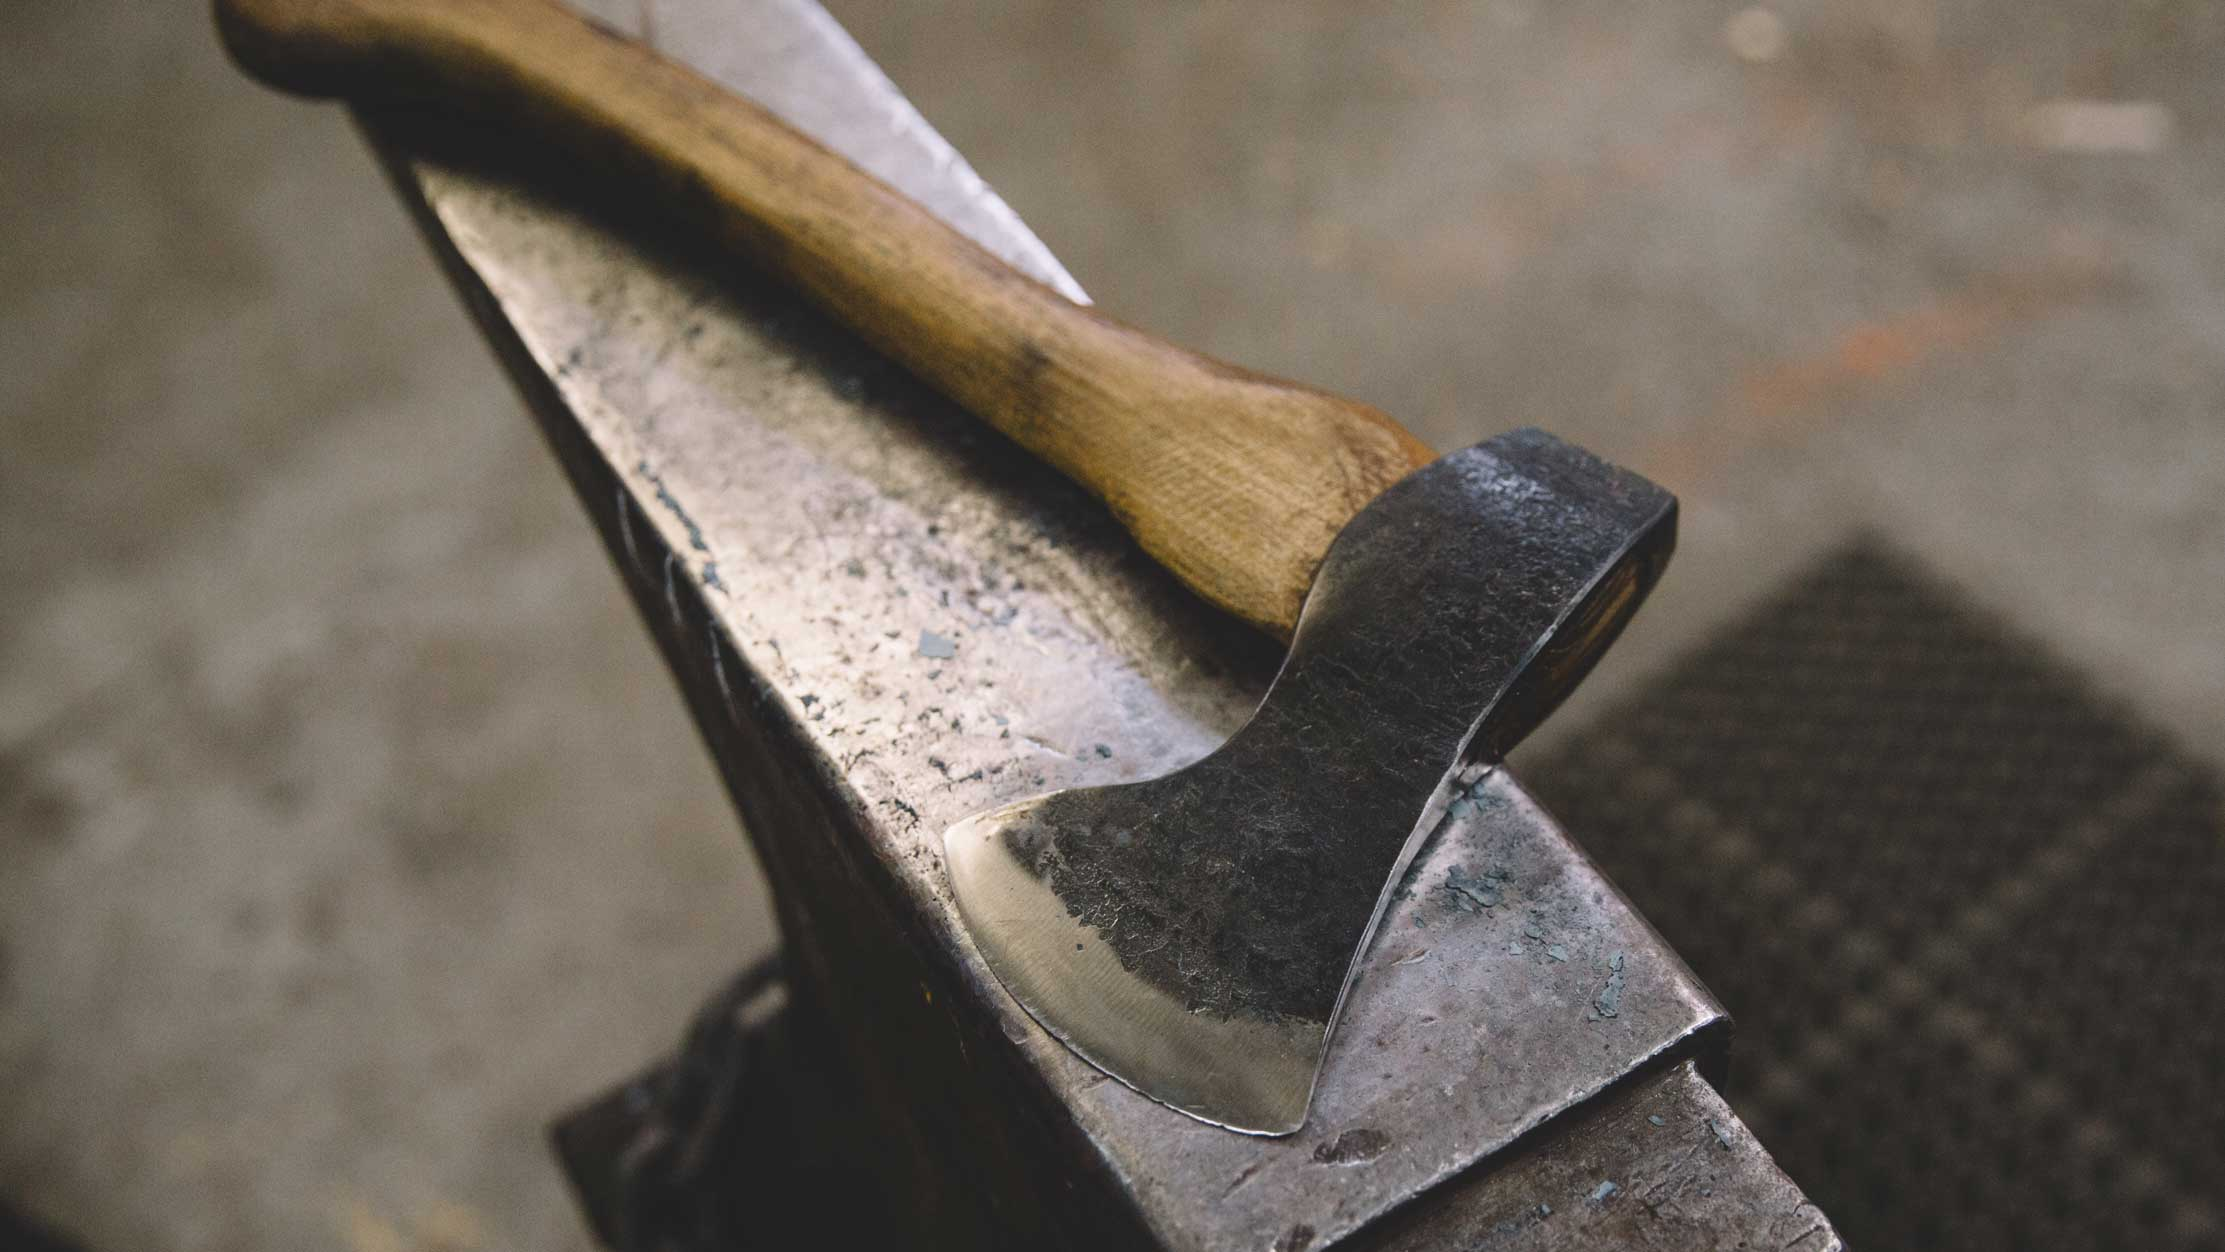 fire horse forge // seattle knife making classes